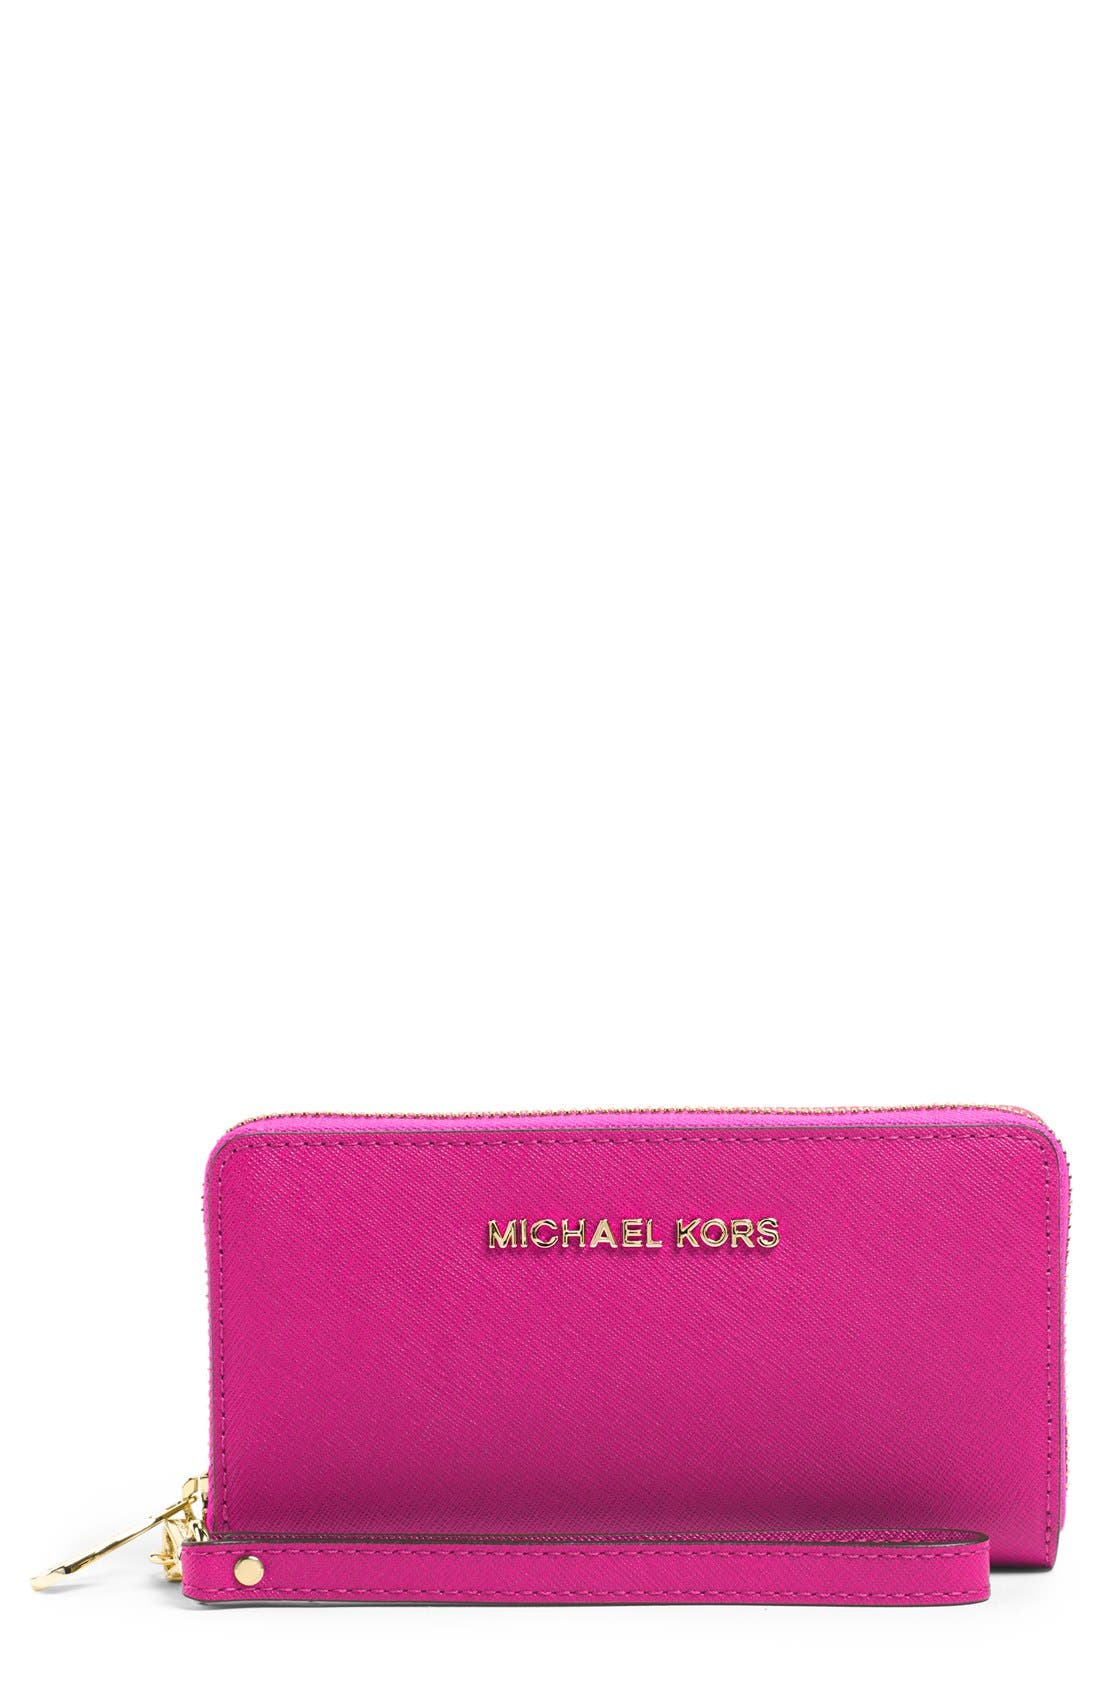 Main Image - MICHAEL Michael Kors 'Large Jet Set' Saffiano Leather Phone Wristlet